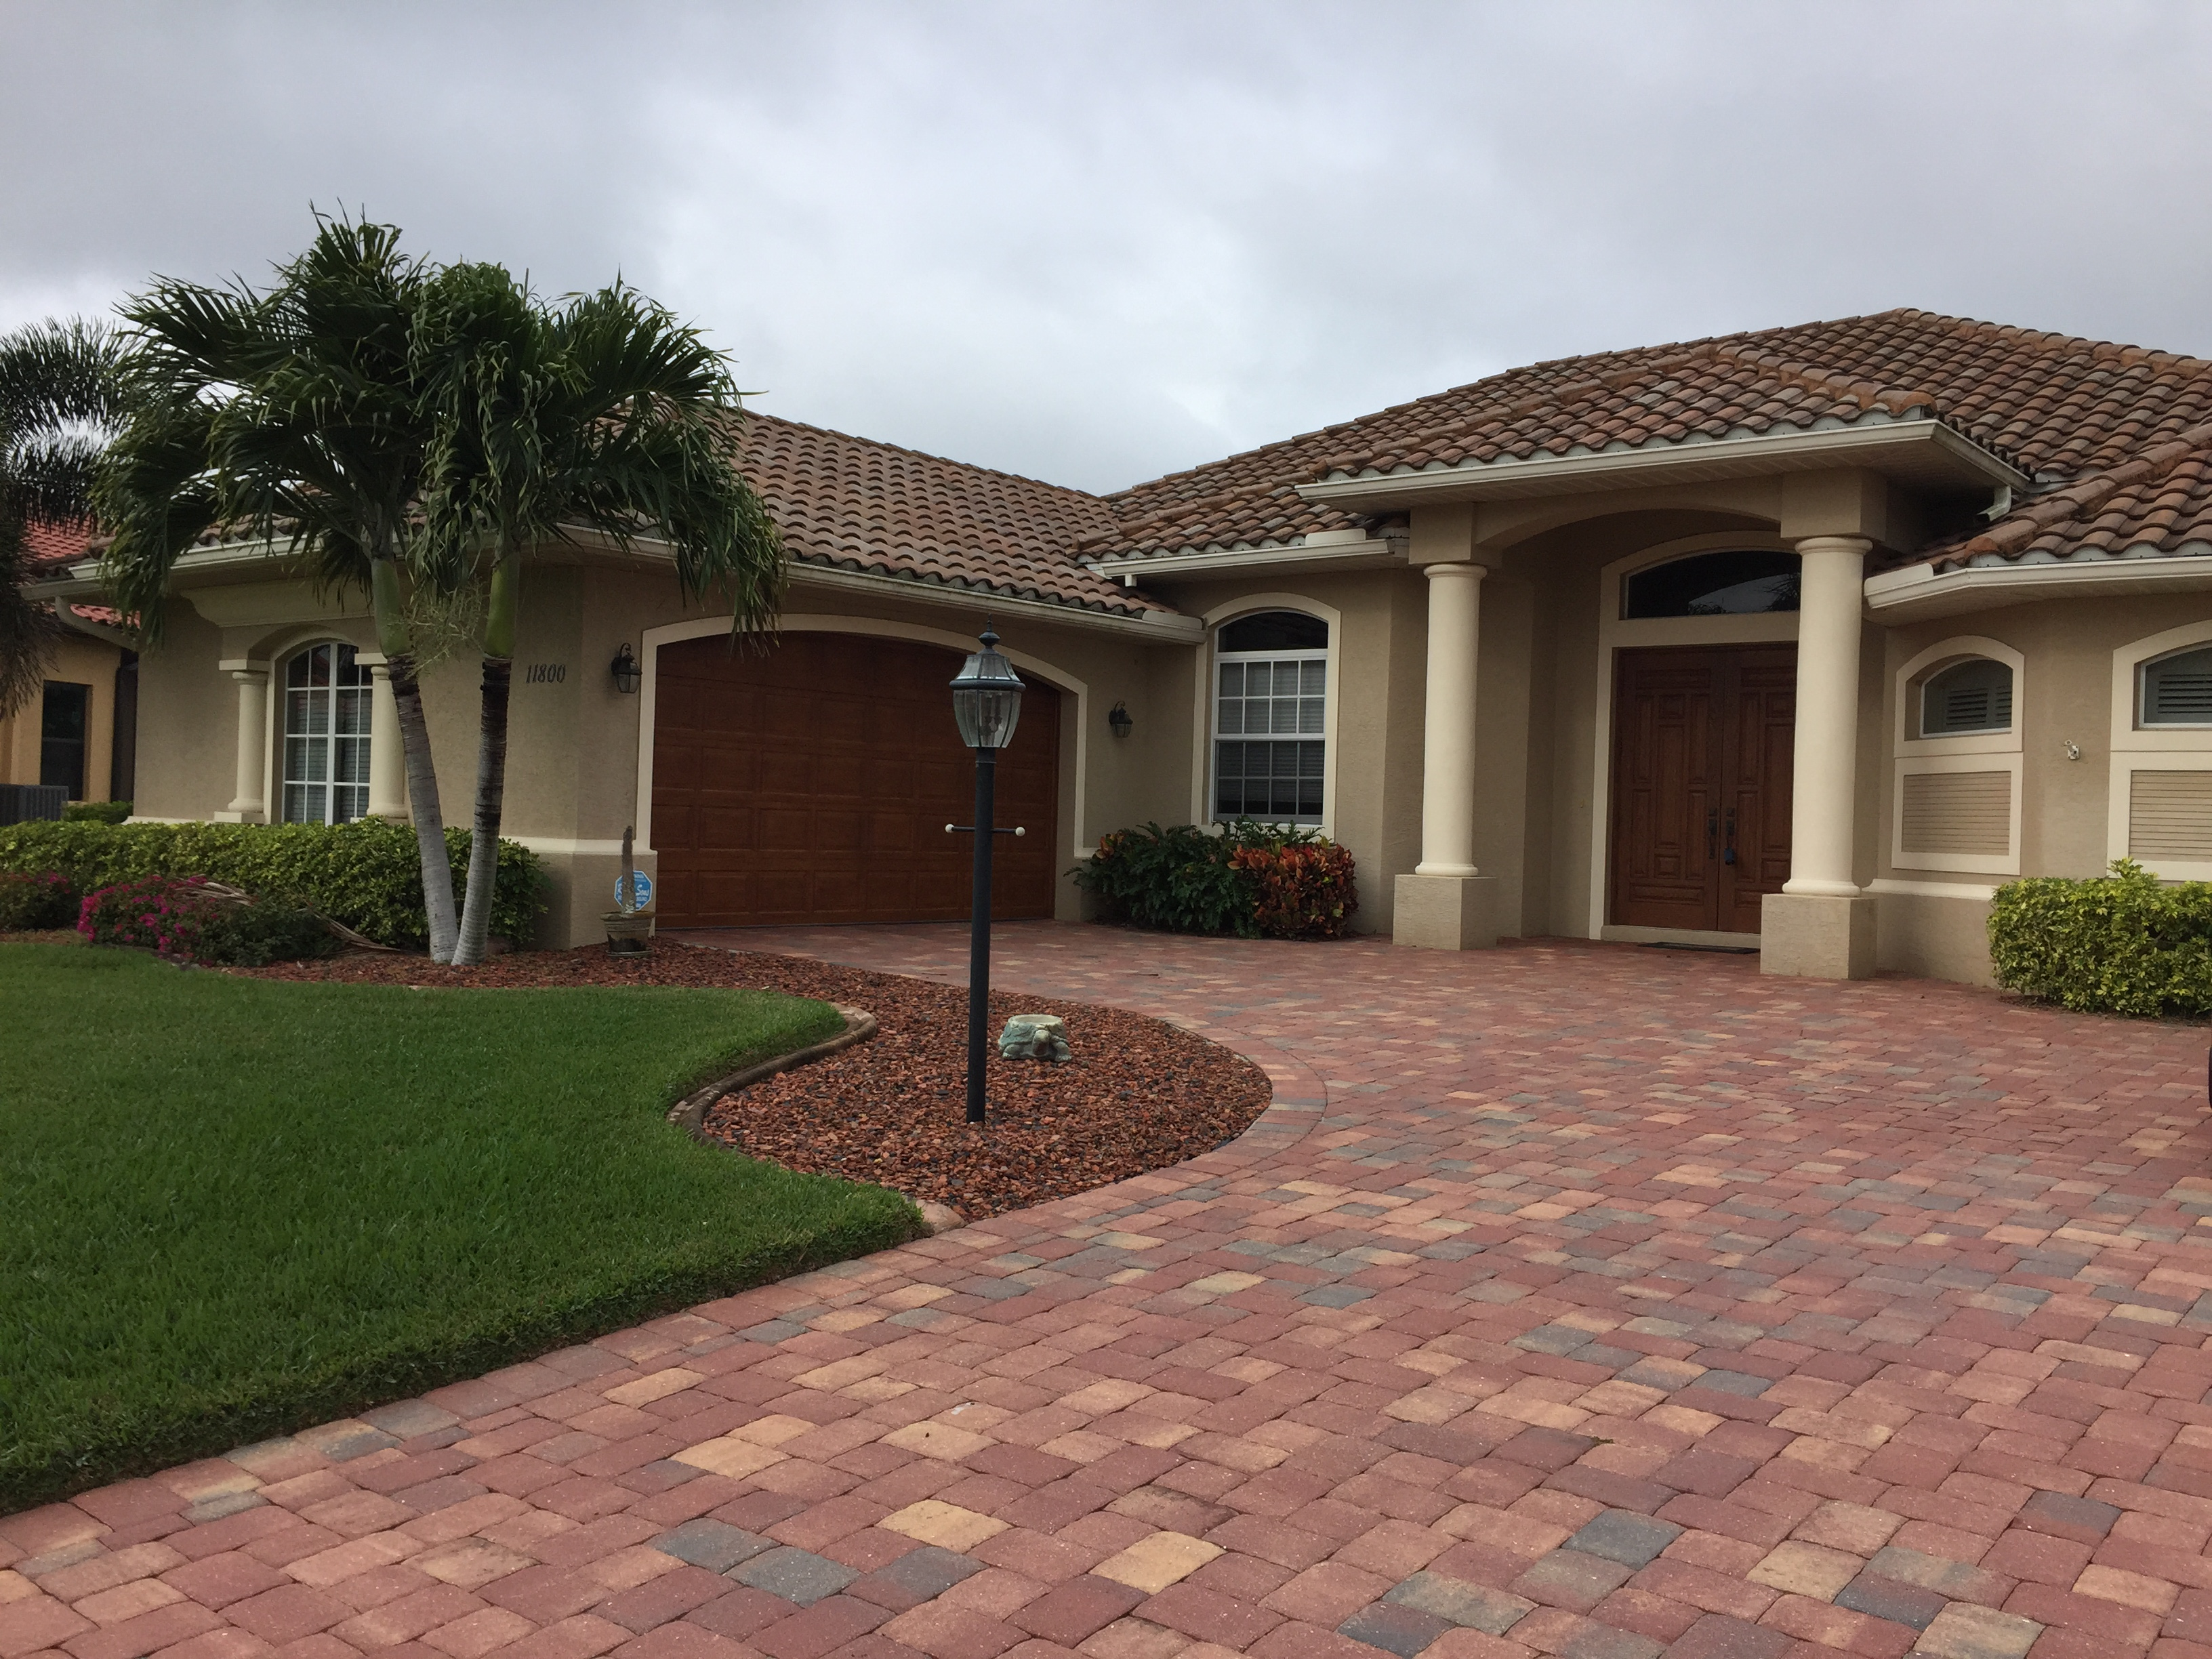 cape coral fl open house—3 bedroom/3 bath home in golf community